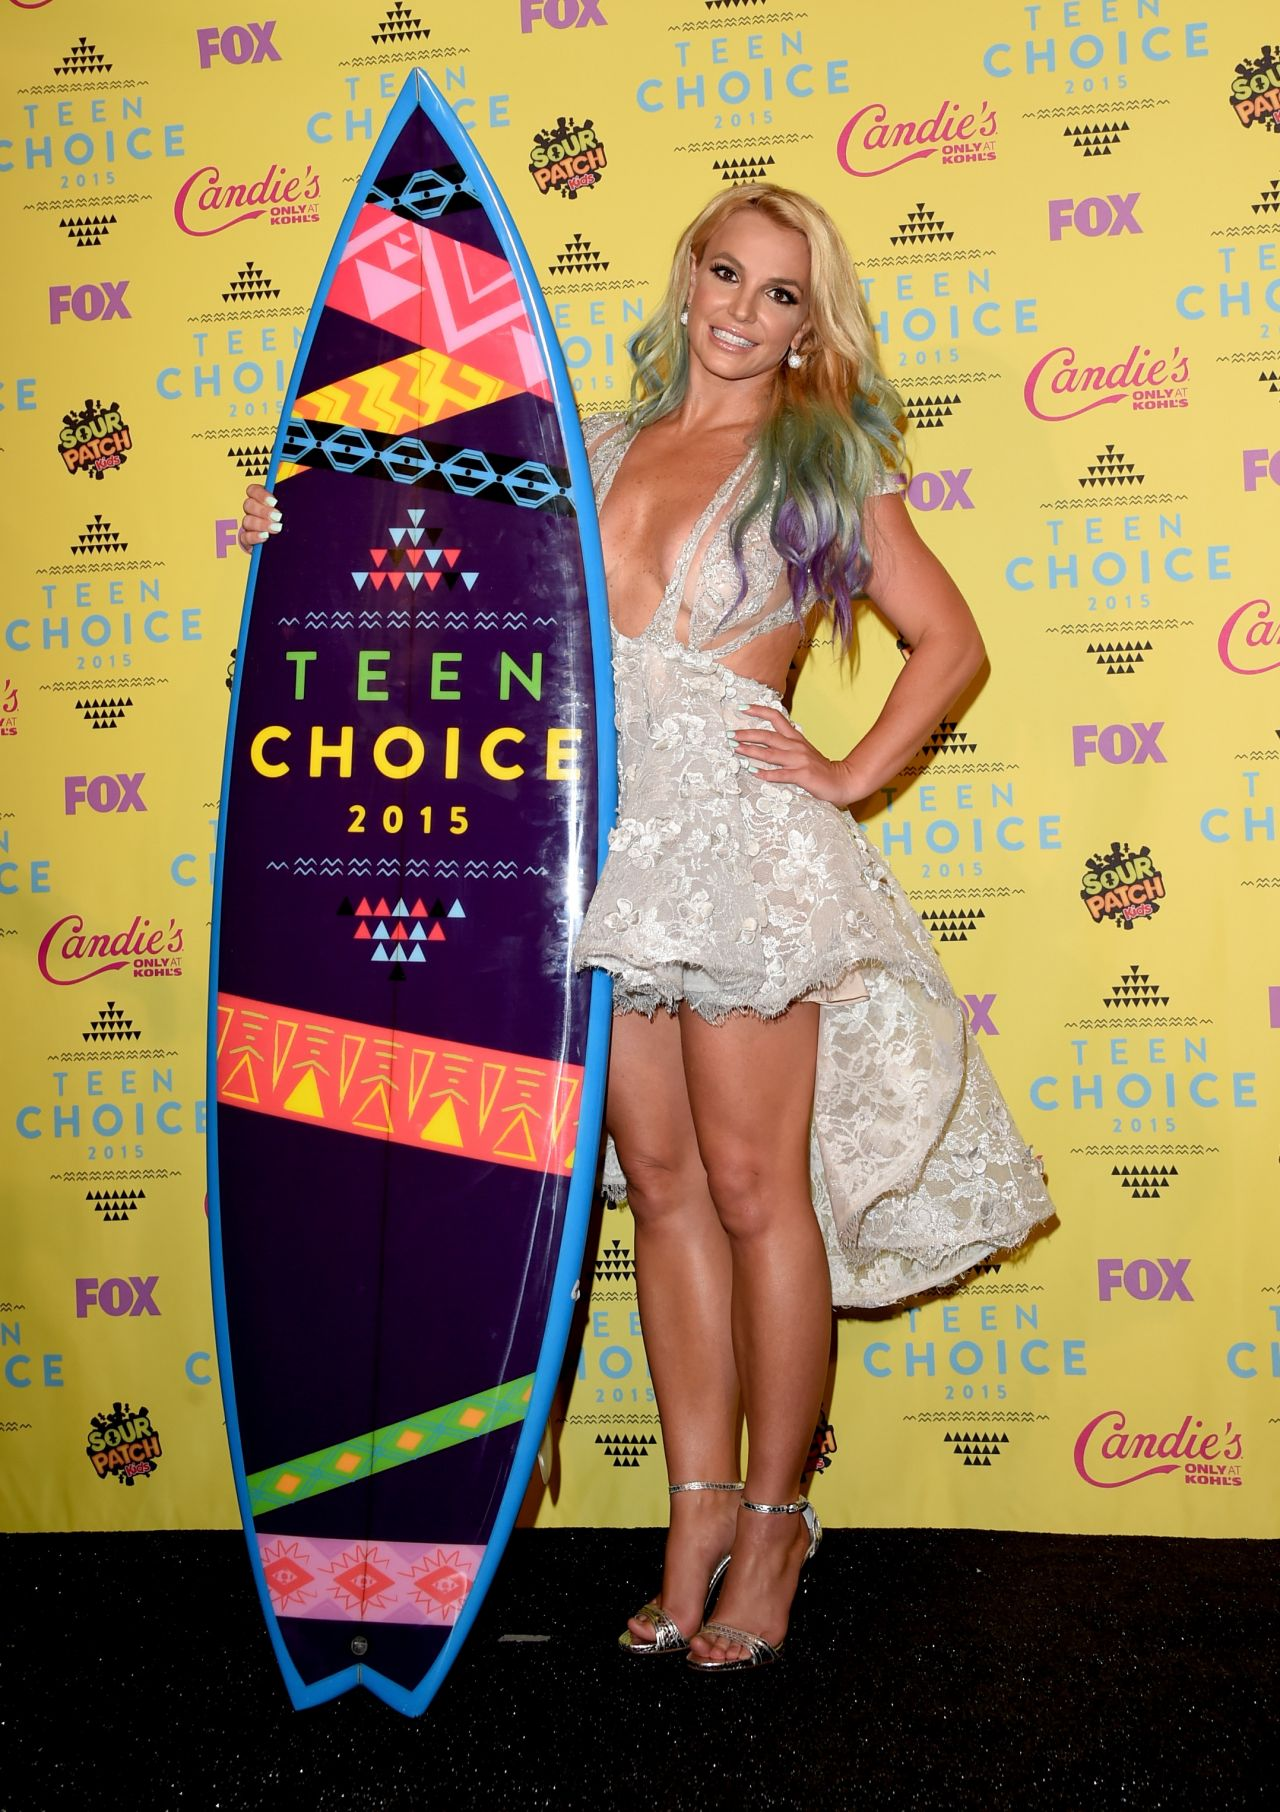 Teen choice awards photo